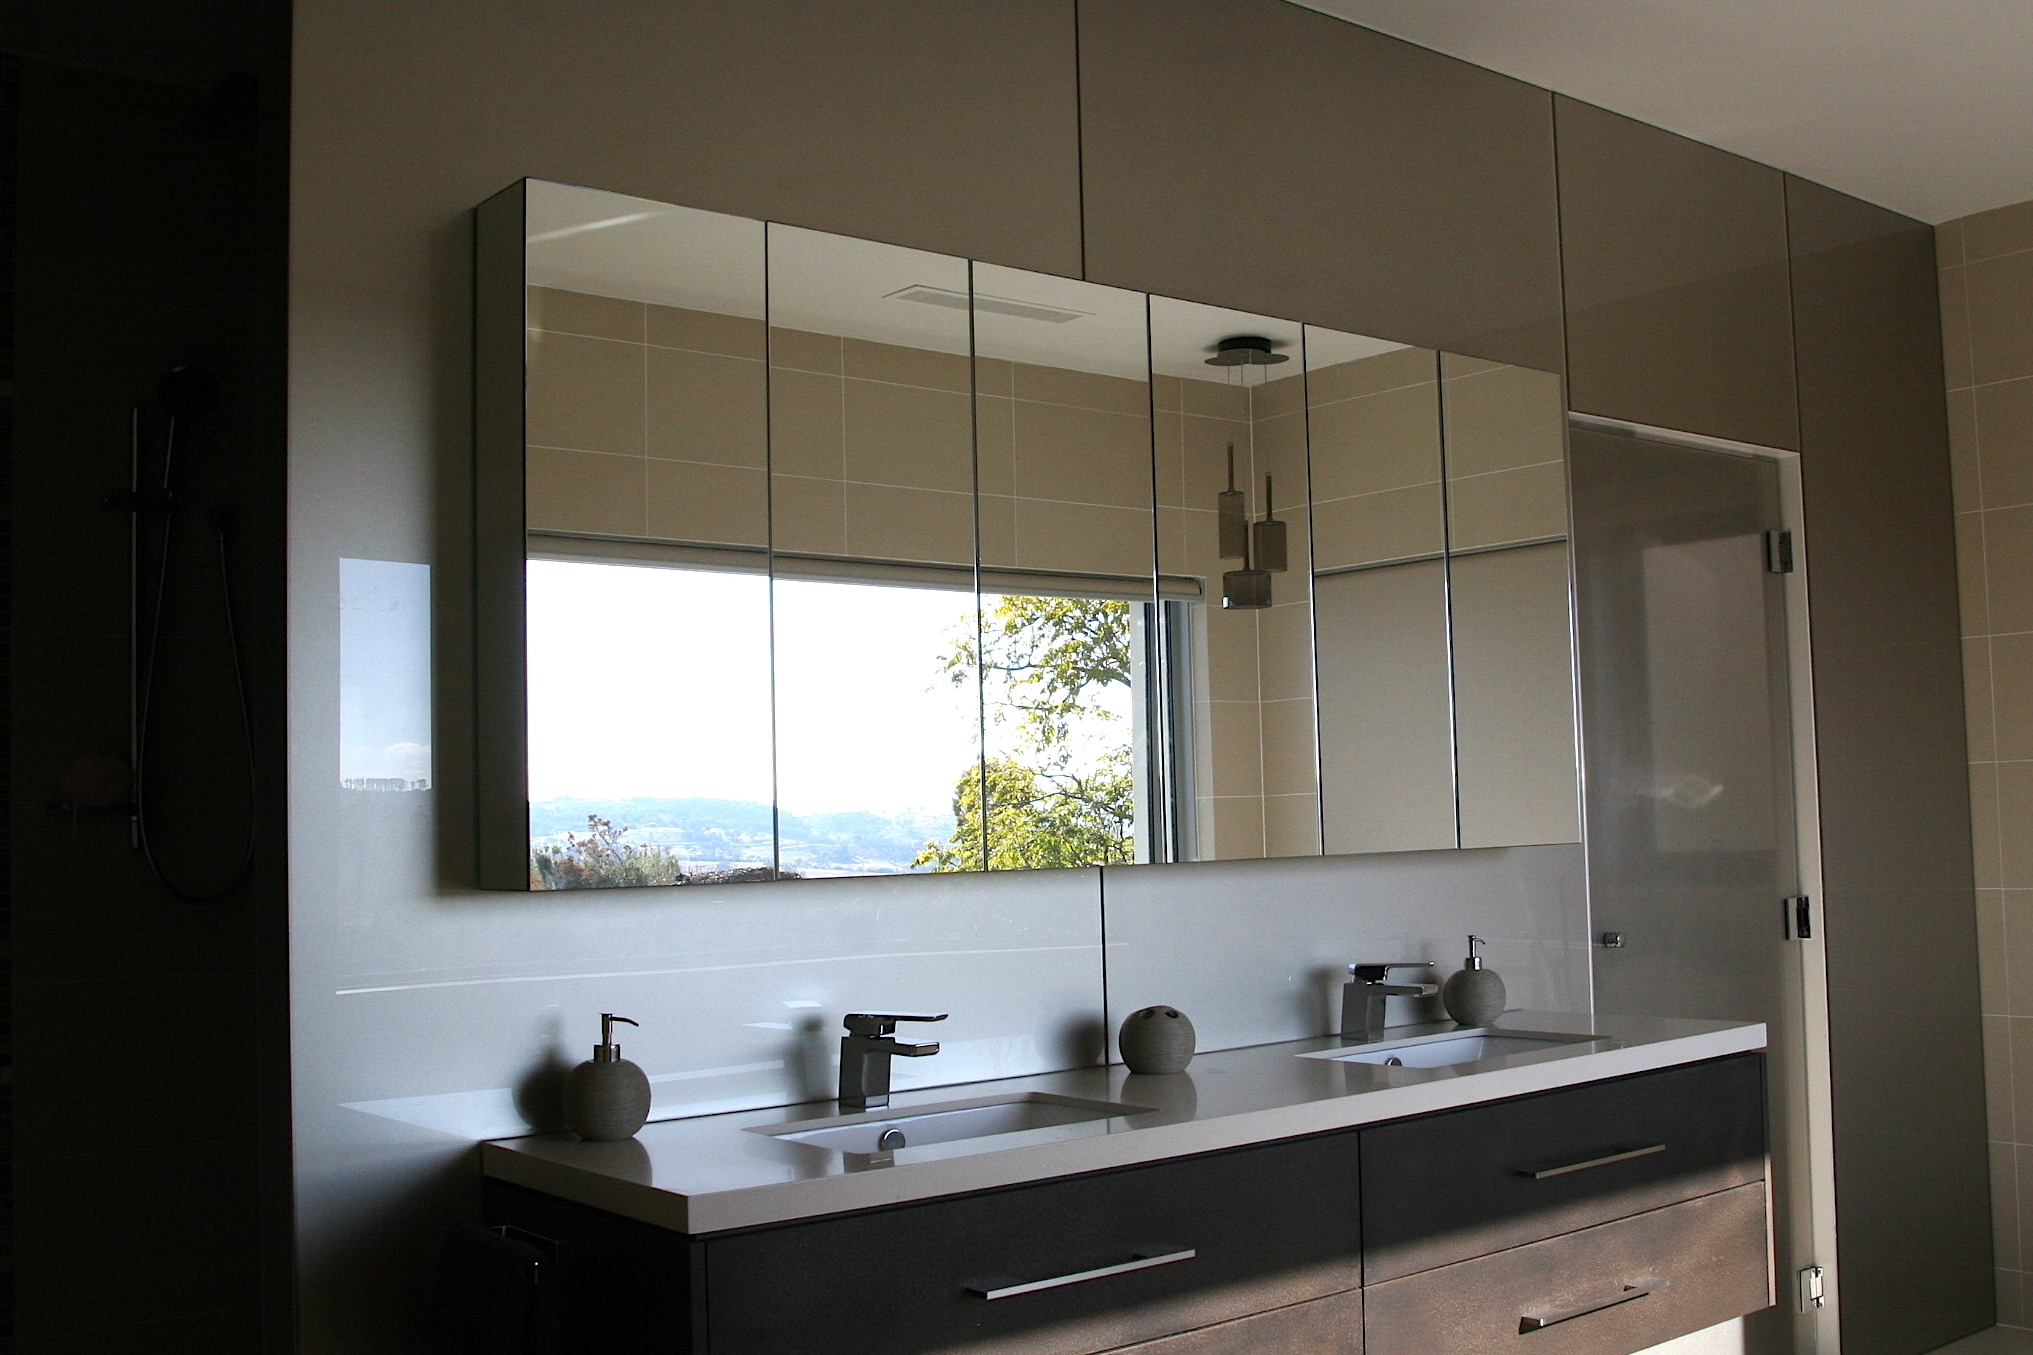 Custom made silver mirrors on front of bathroom cabinetry.